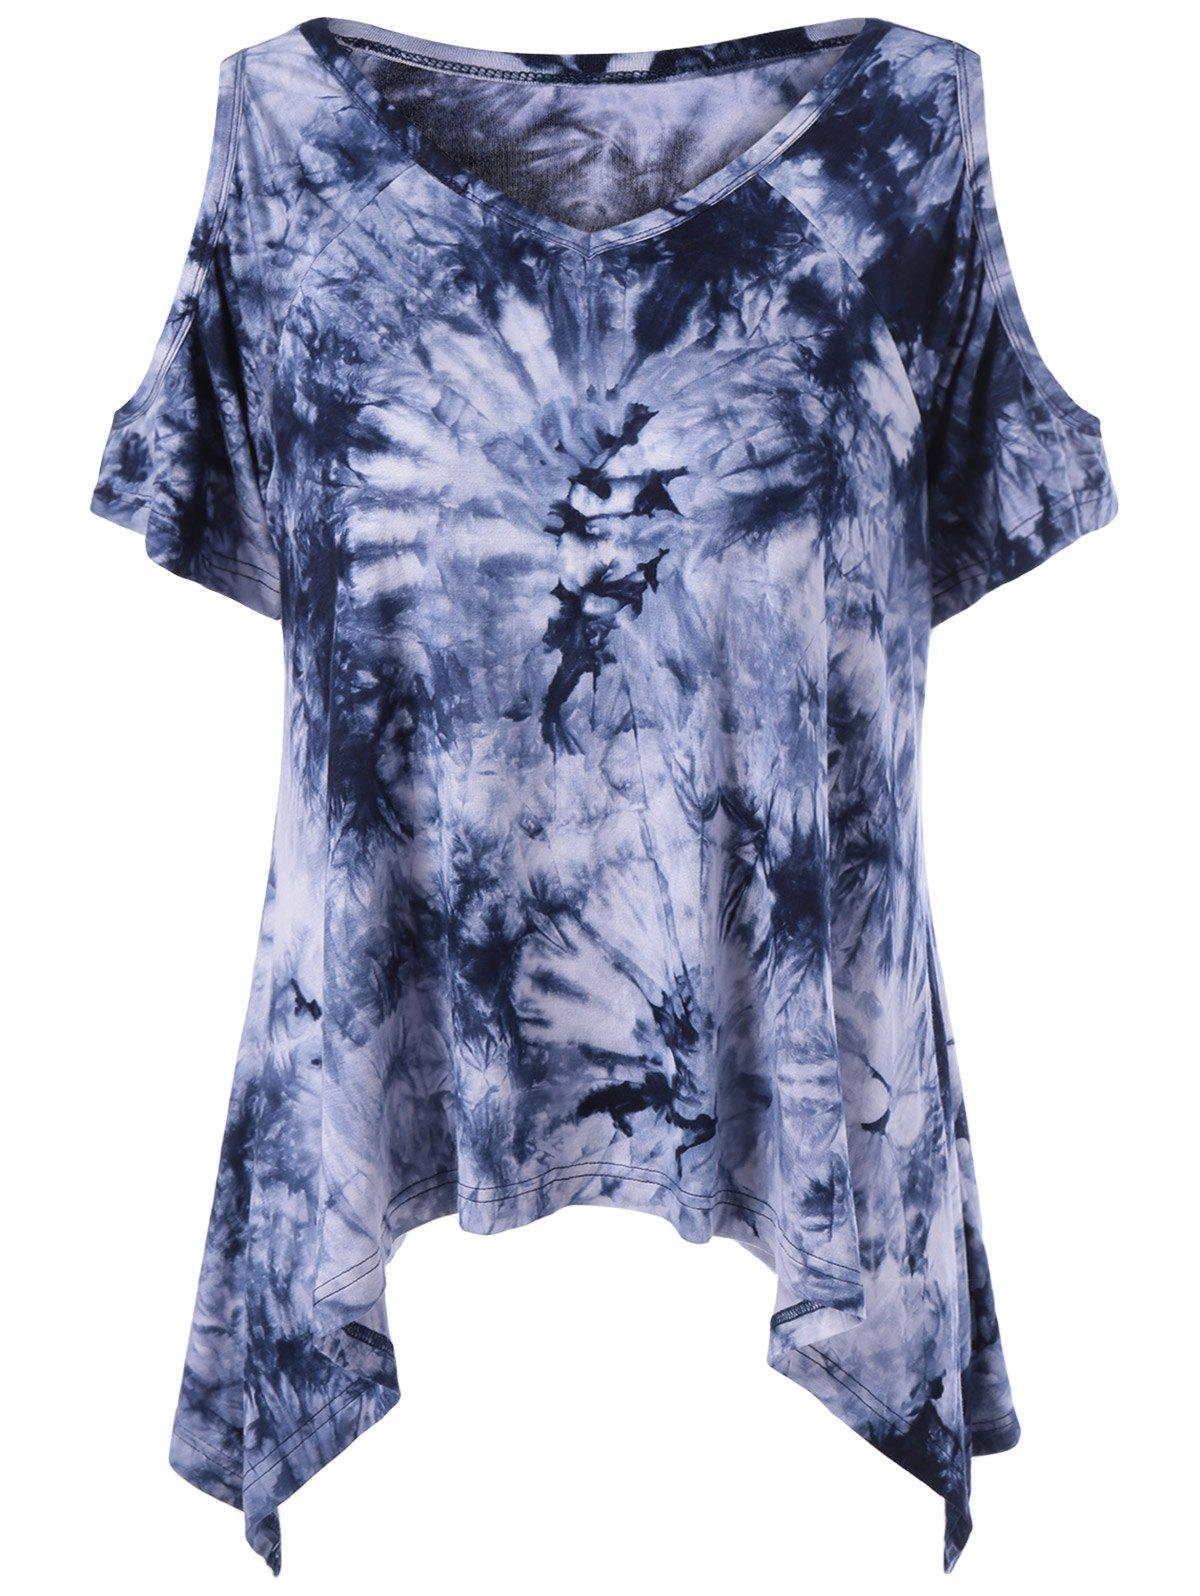 Tie-Dye Cold Shoulder Asymmetrical T-Shirt - COLORMIX L